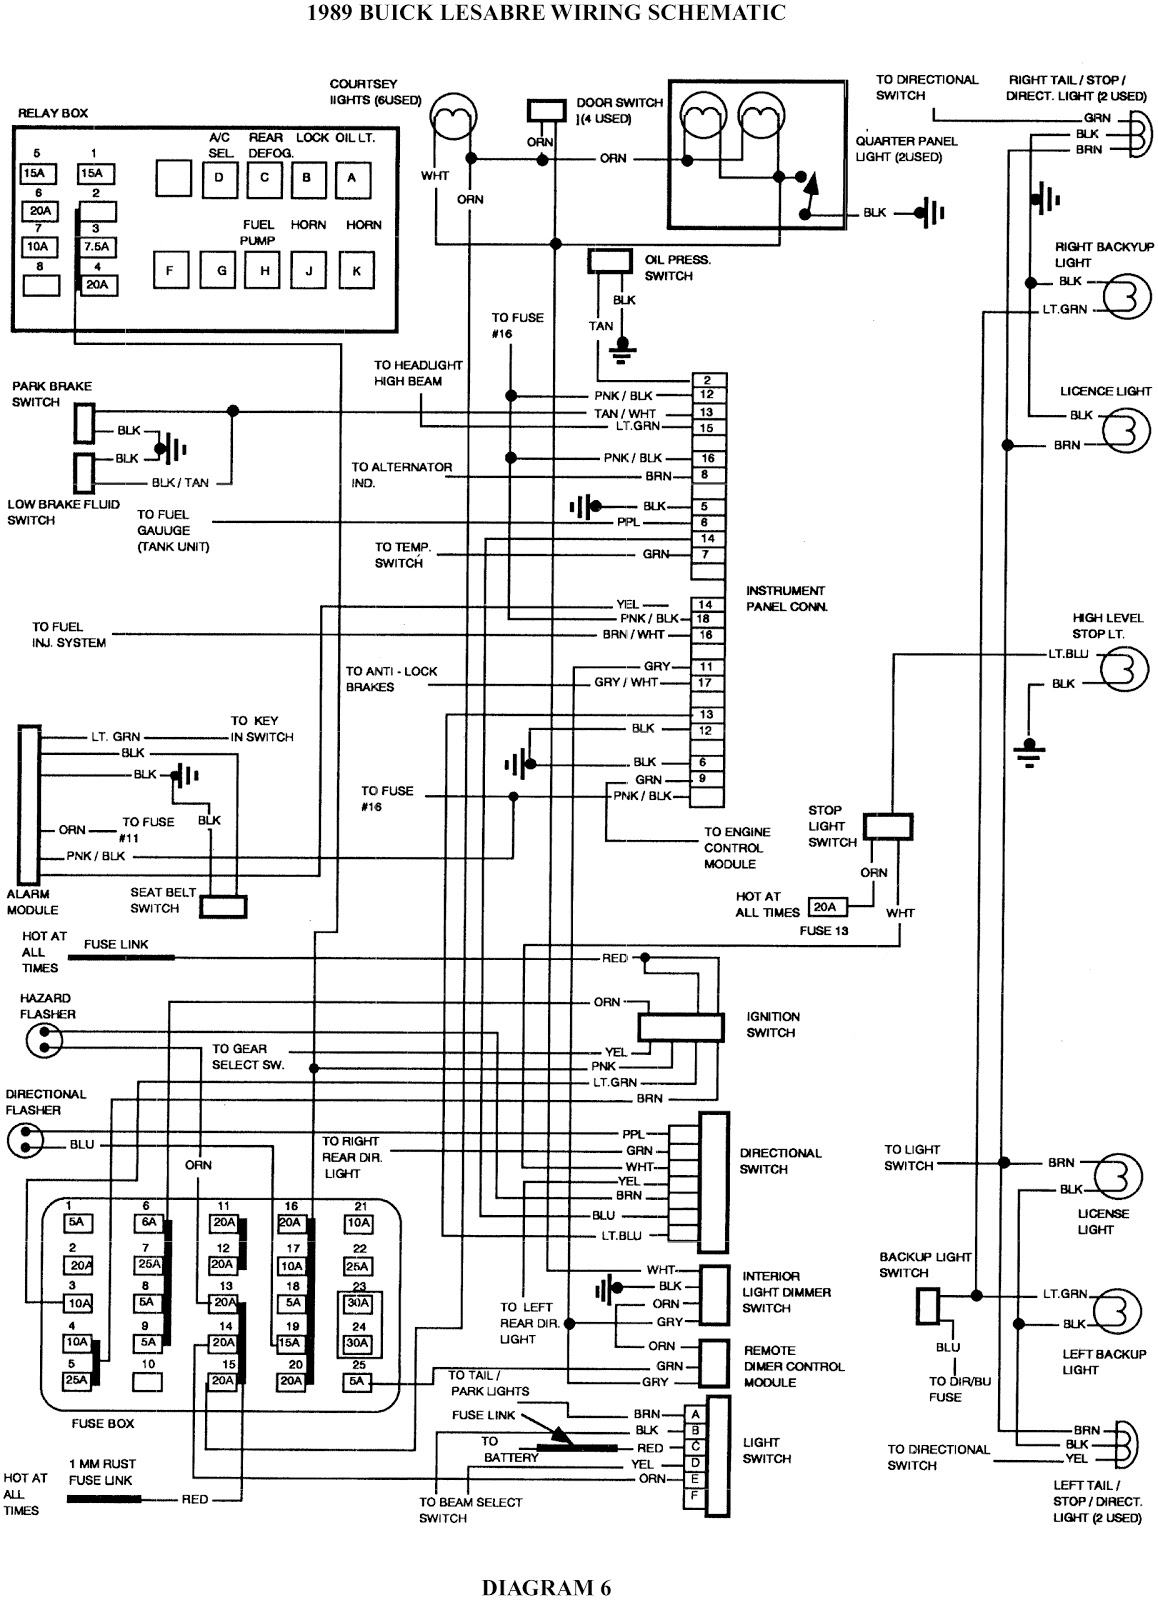 Air Ride Pressure Switch Wiring Diagram 2004 Chevy Silverado Front Suspension Installation Bathroom Fan With Timer 1989 Buick Lesabre Schematic